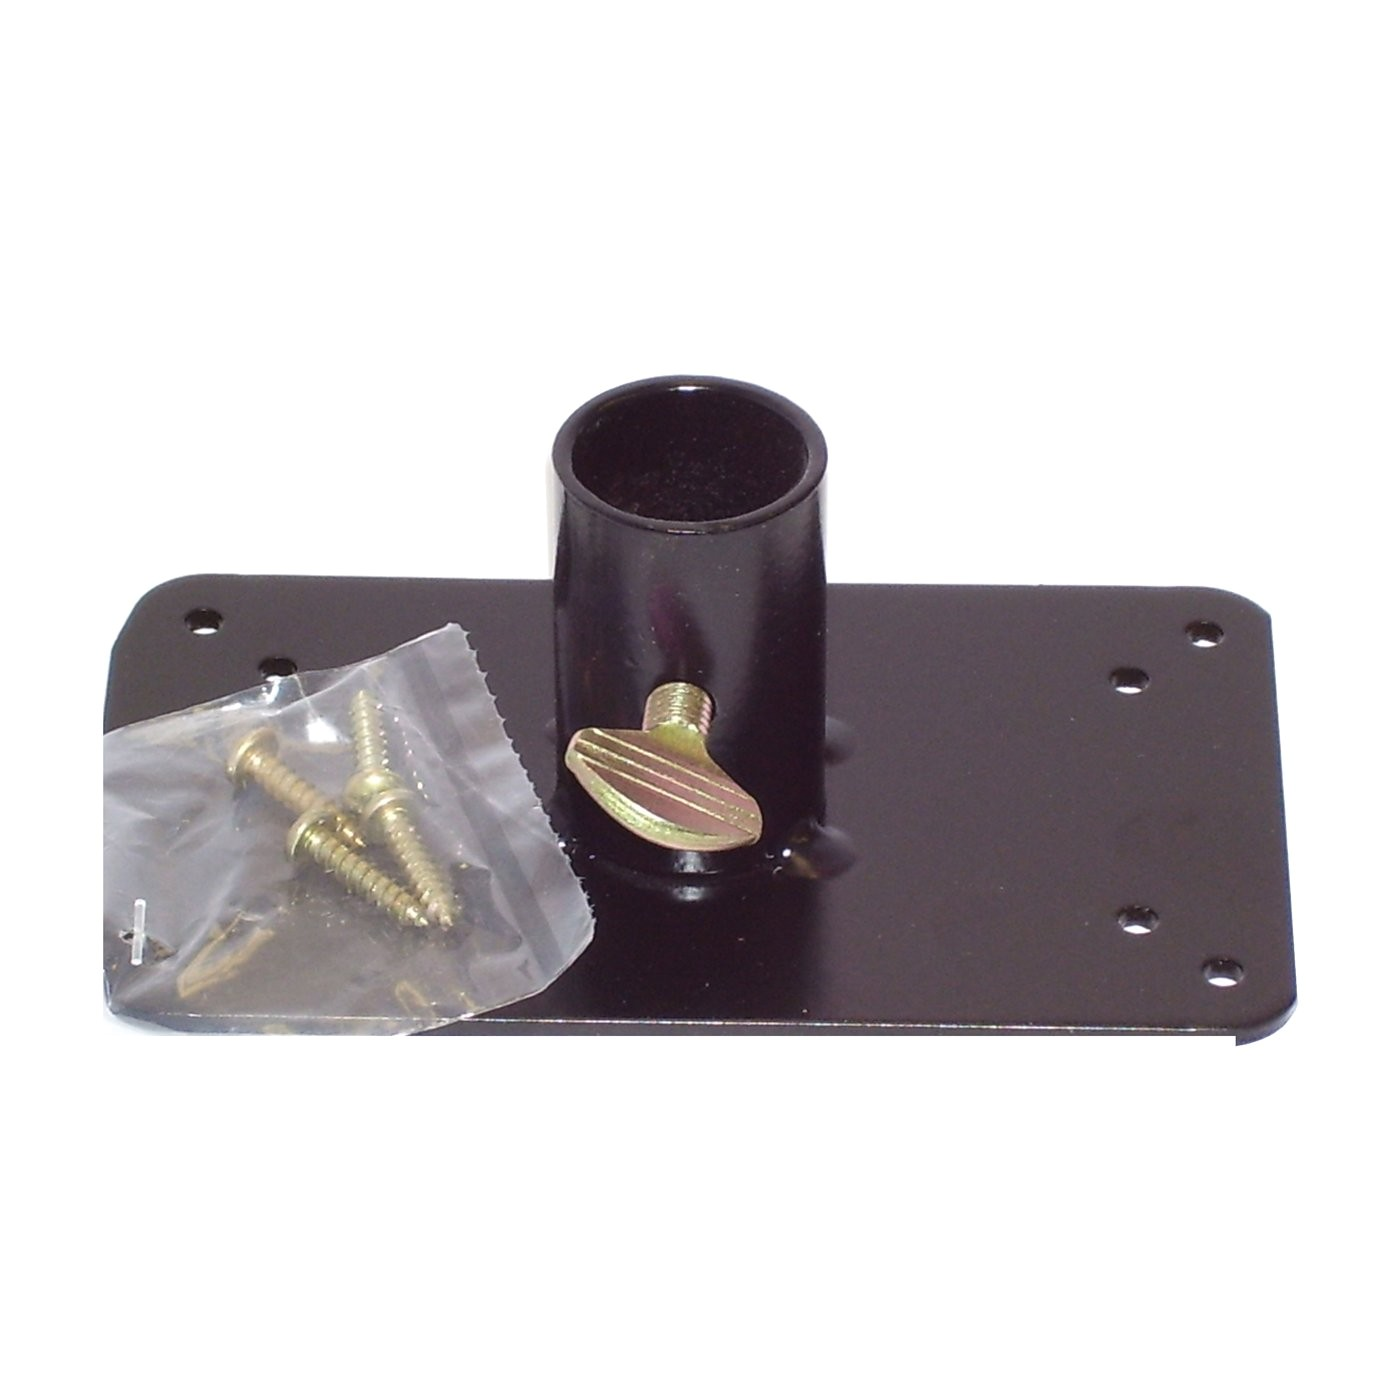 birds choice 1202 mounting flange for 1 in pole g1210283